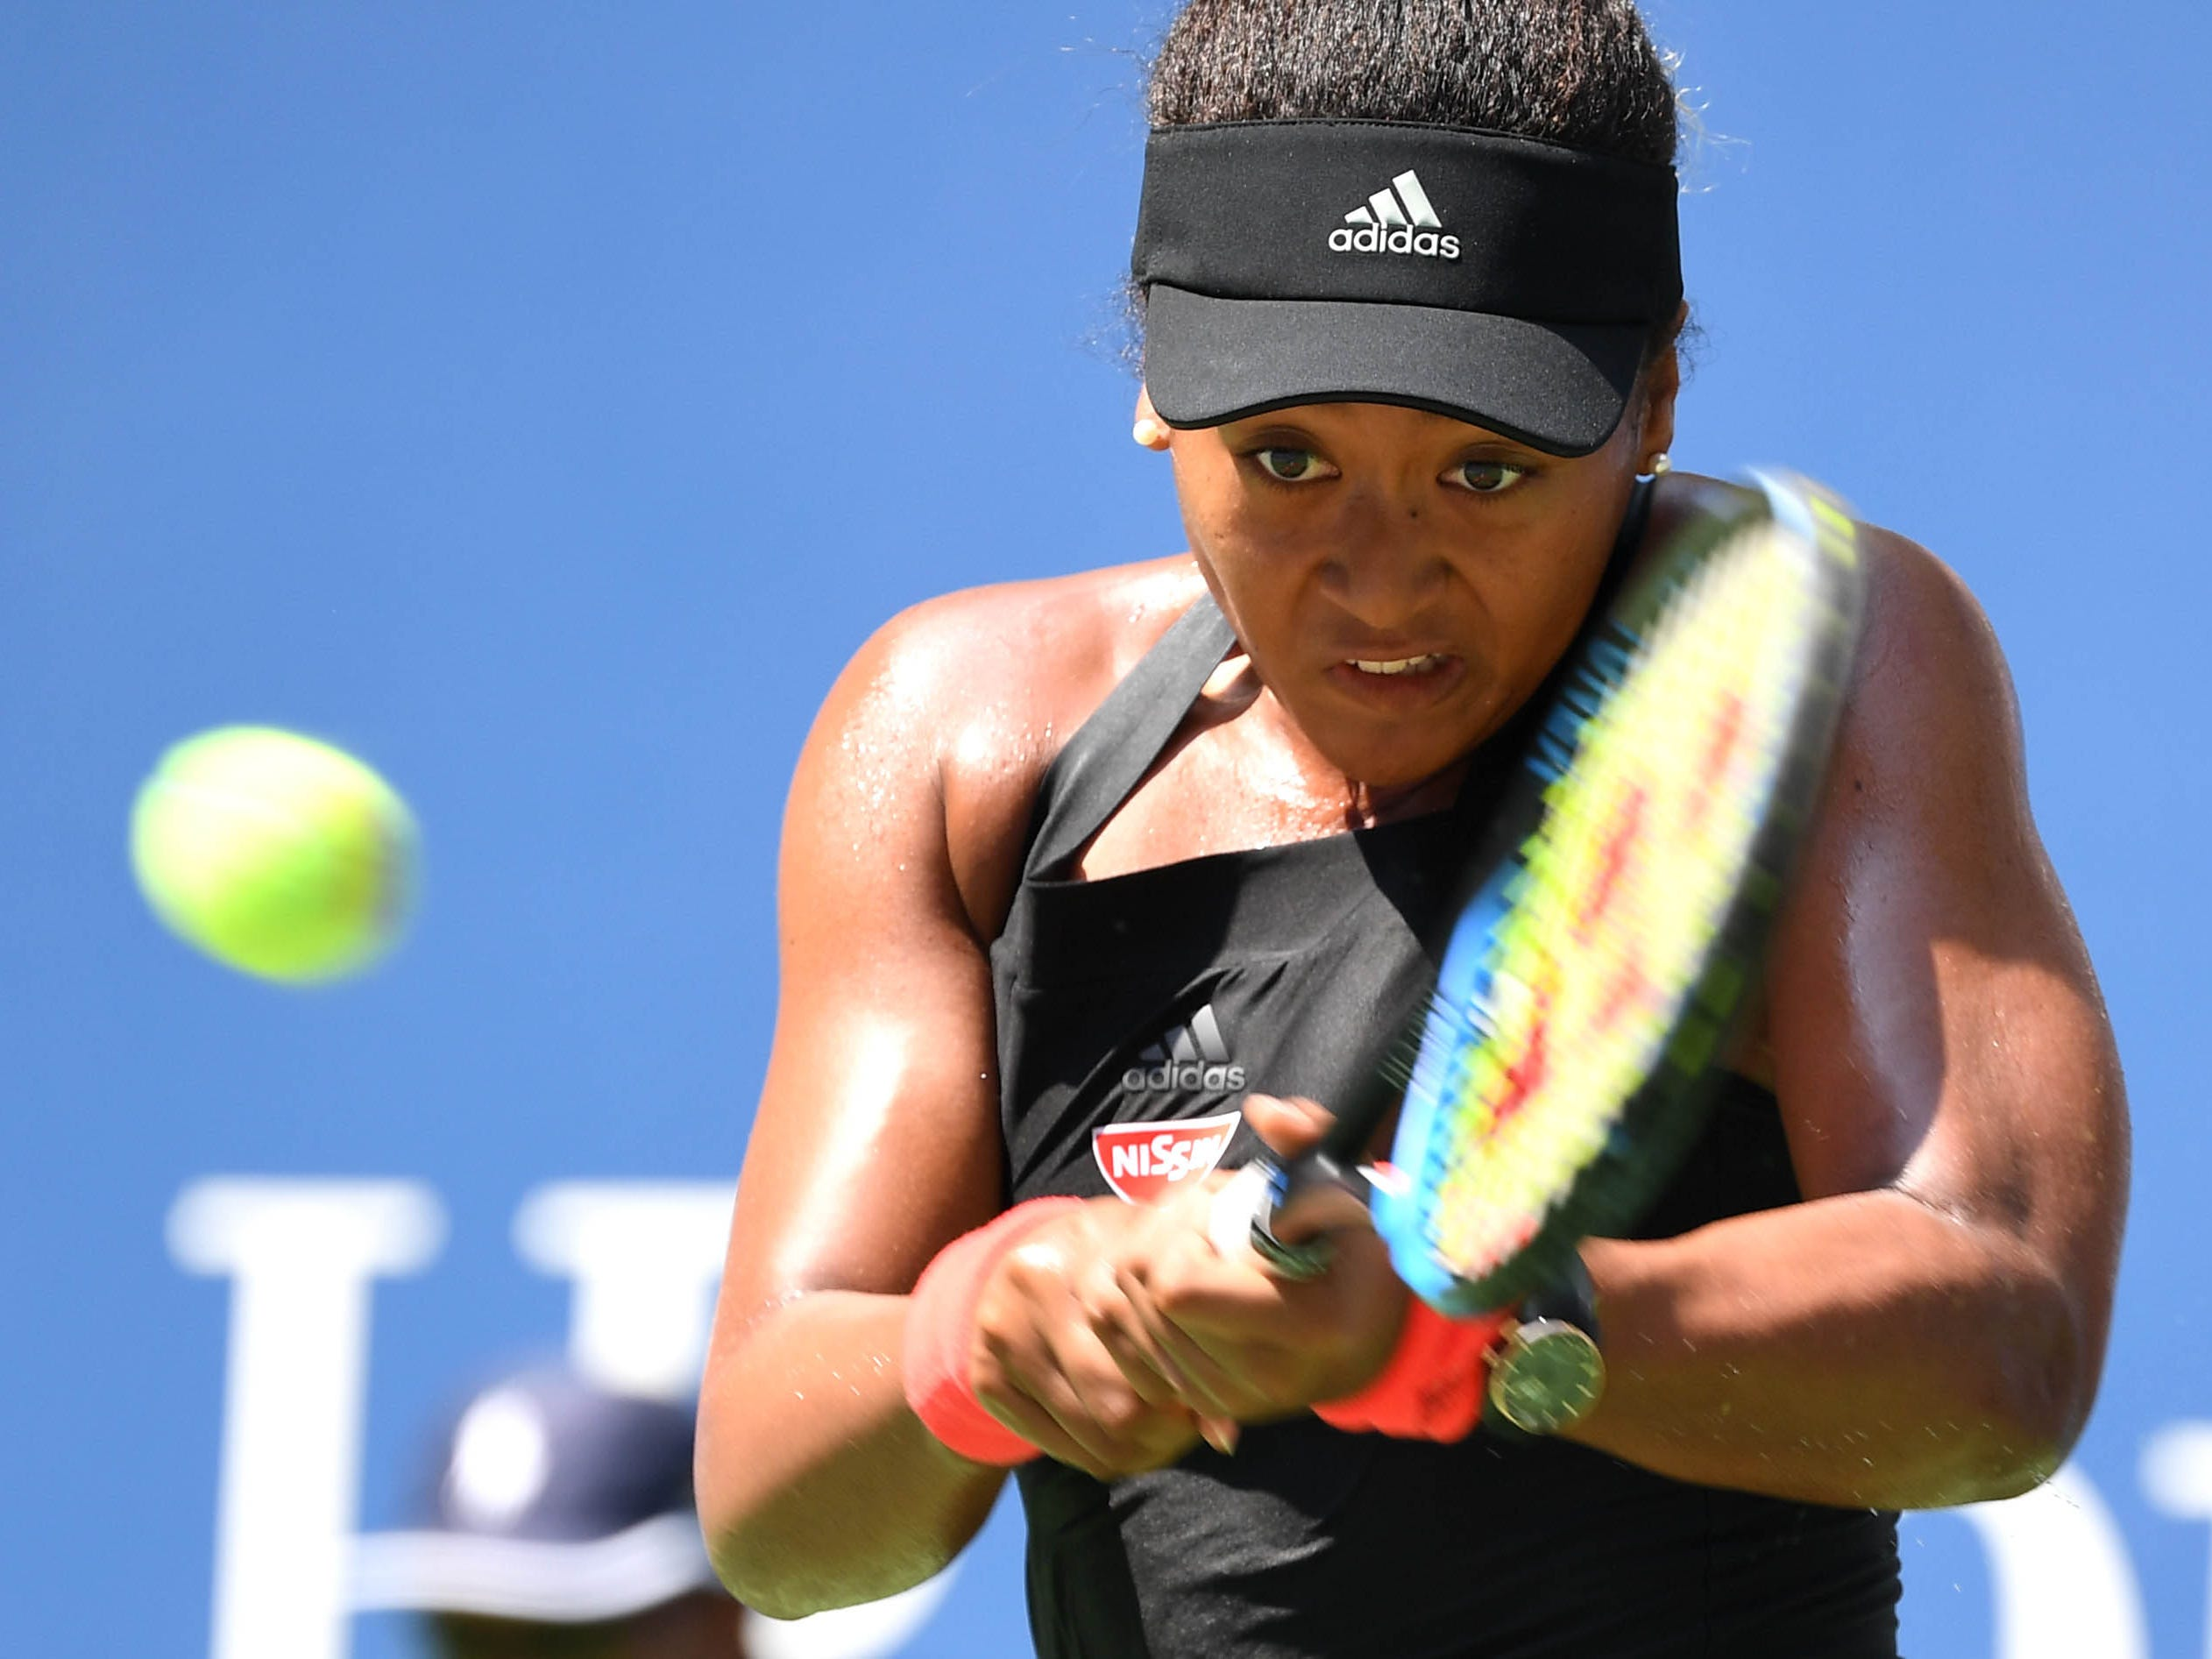 Naomi Osaka, the 20th seed, strokes a backhand to Lesia Tsurenko during her 6-1, 6-1 quarterfinal win.